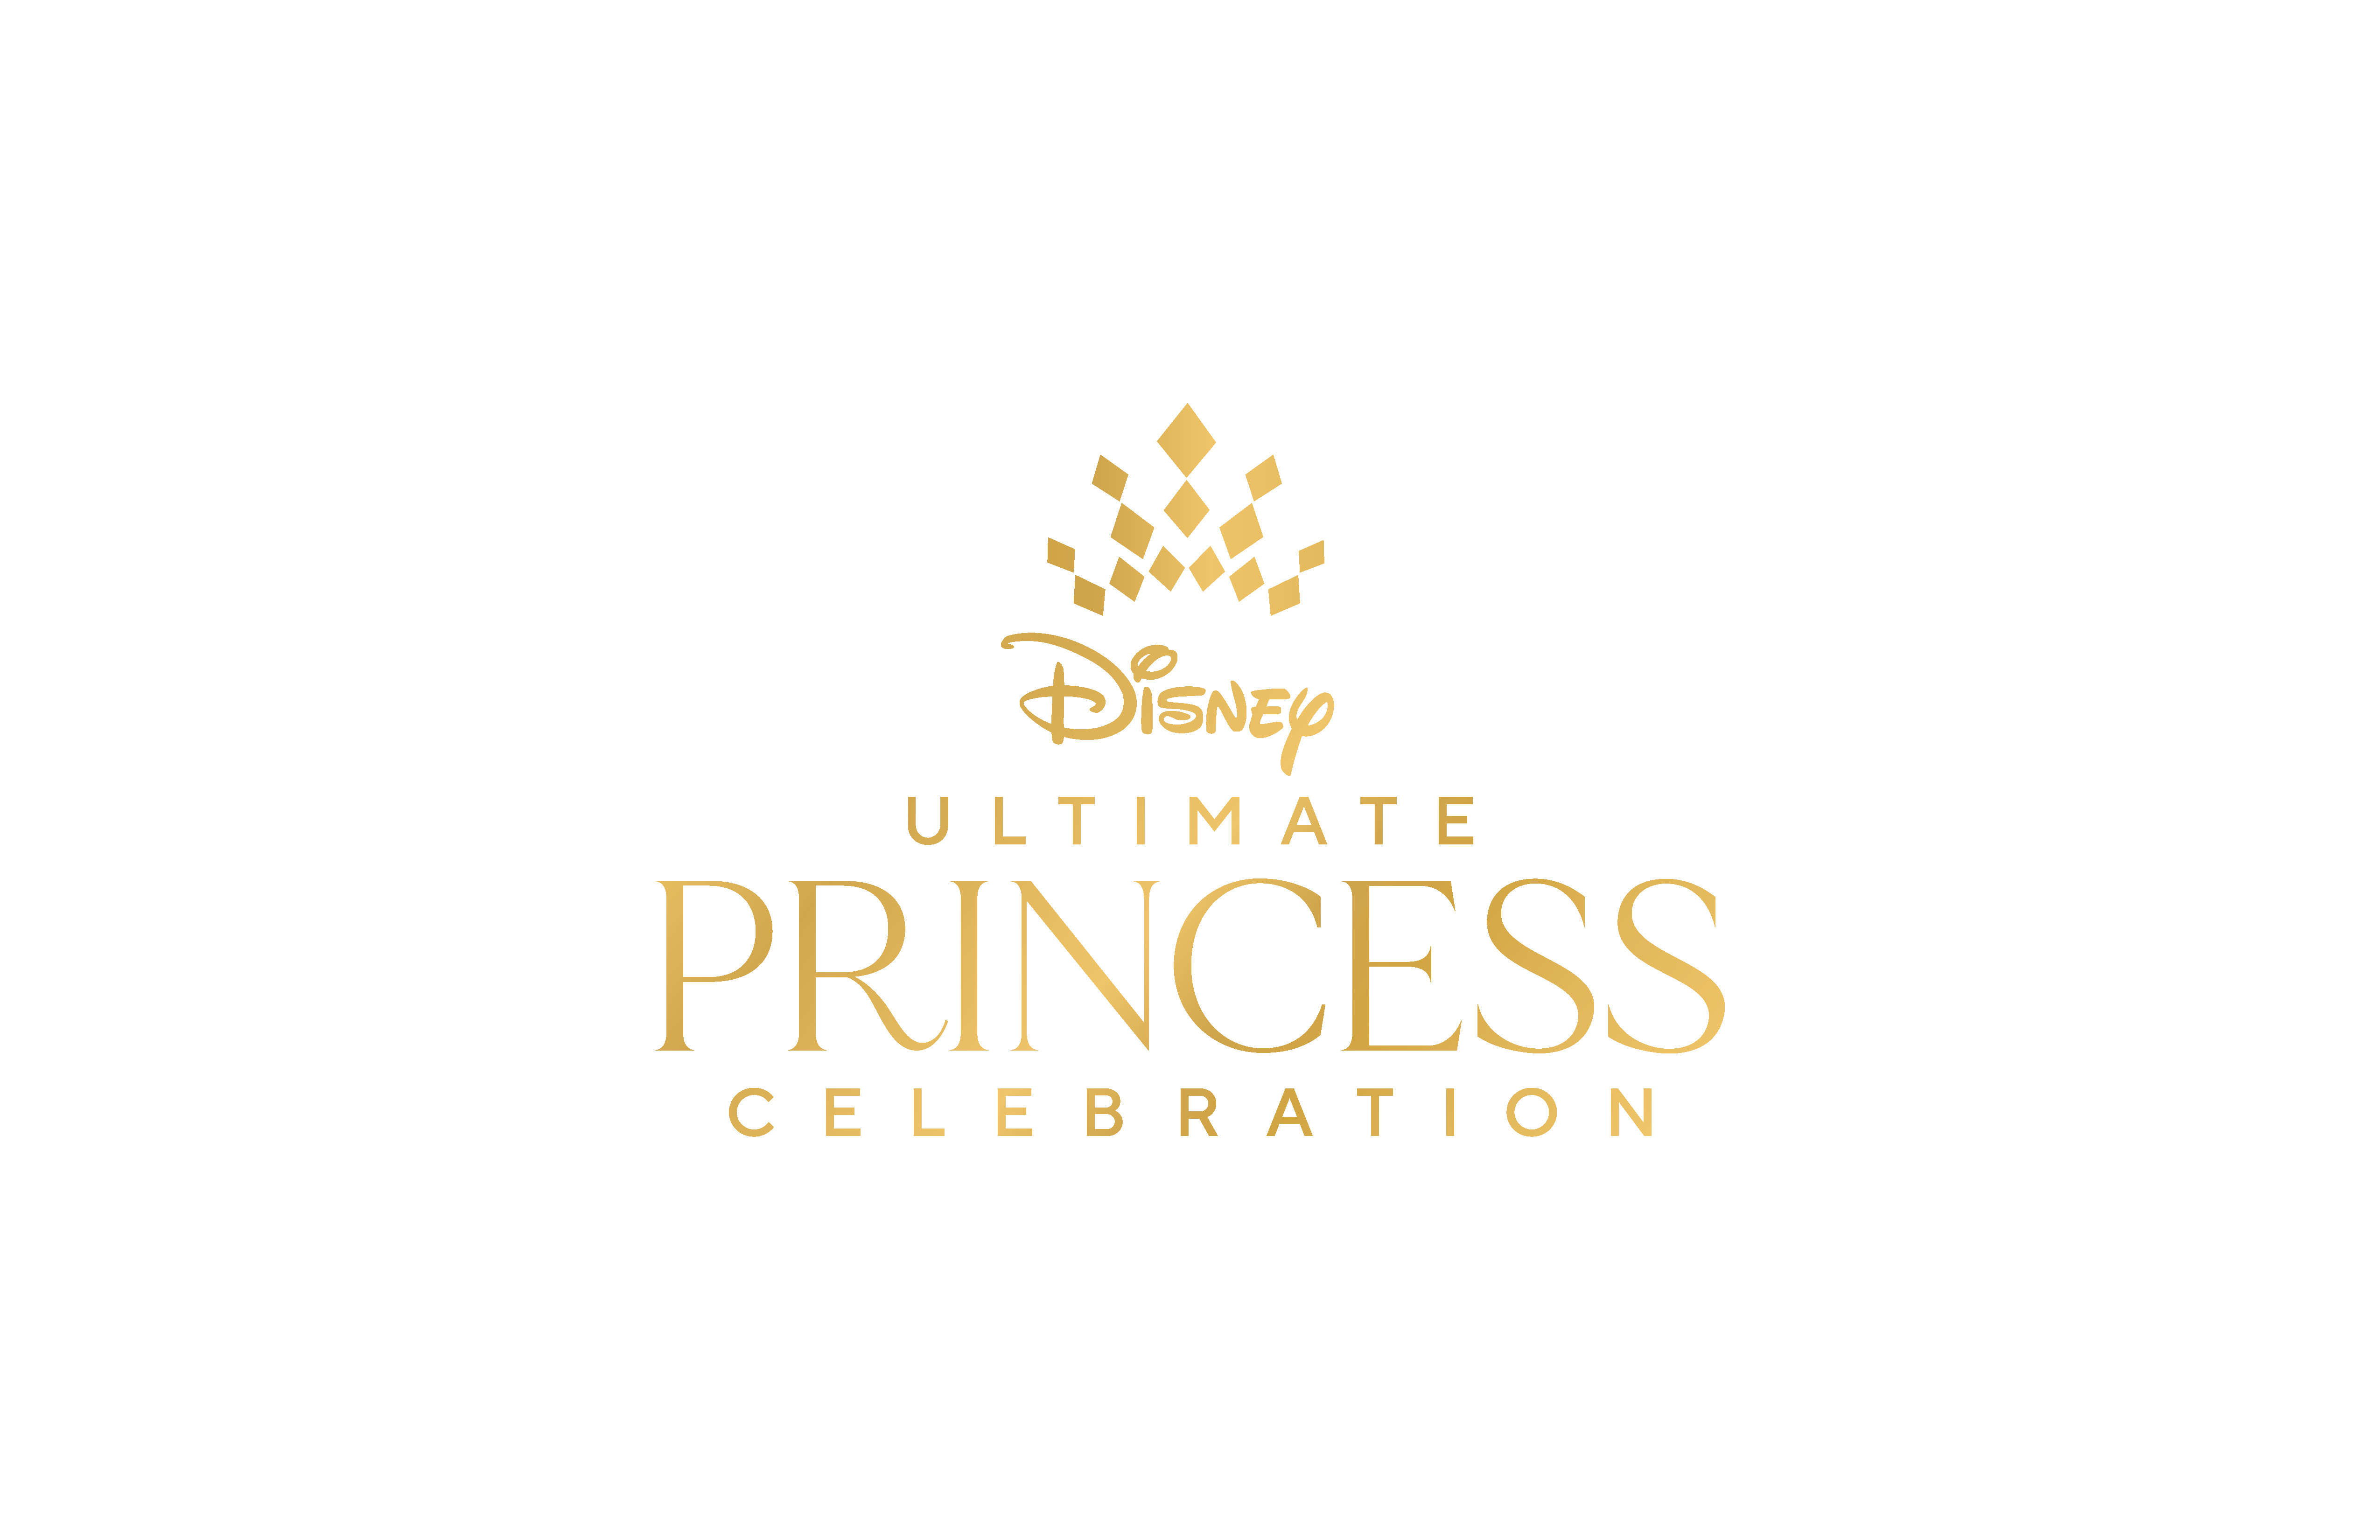 Disney Africa Announces Ultimate Princess Celebration